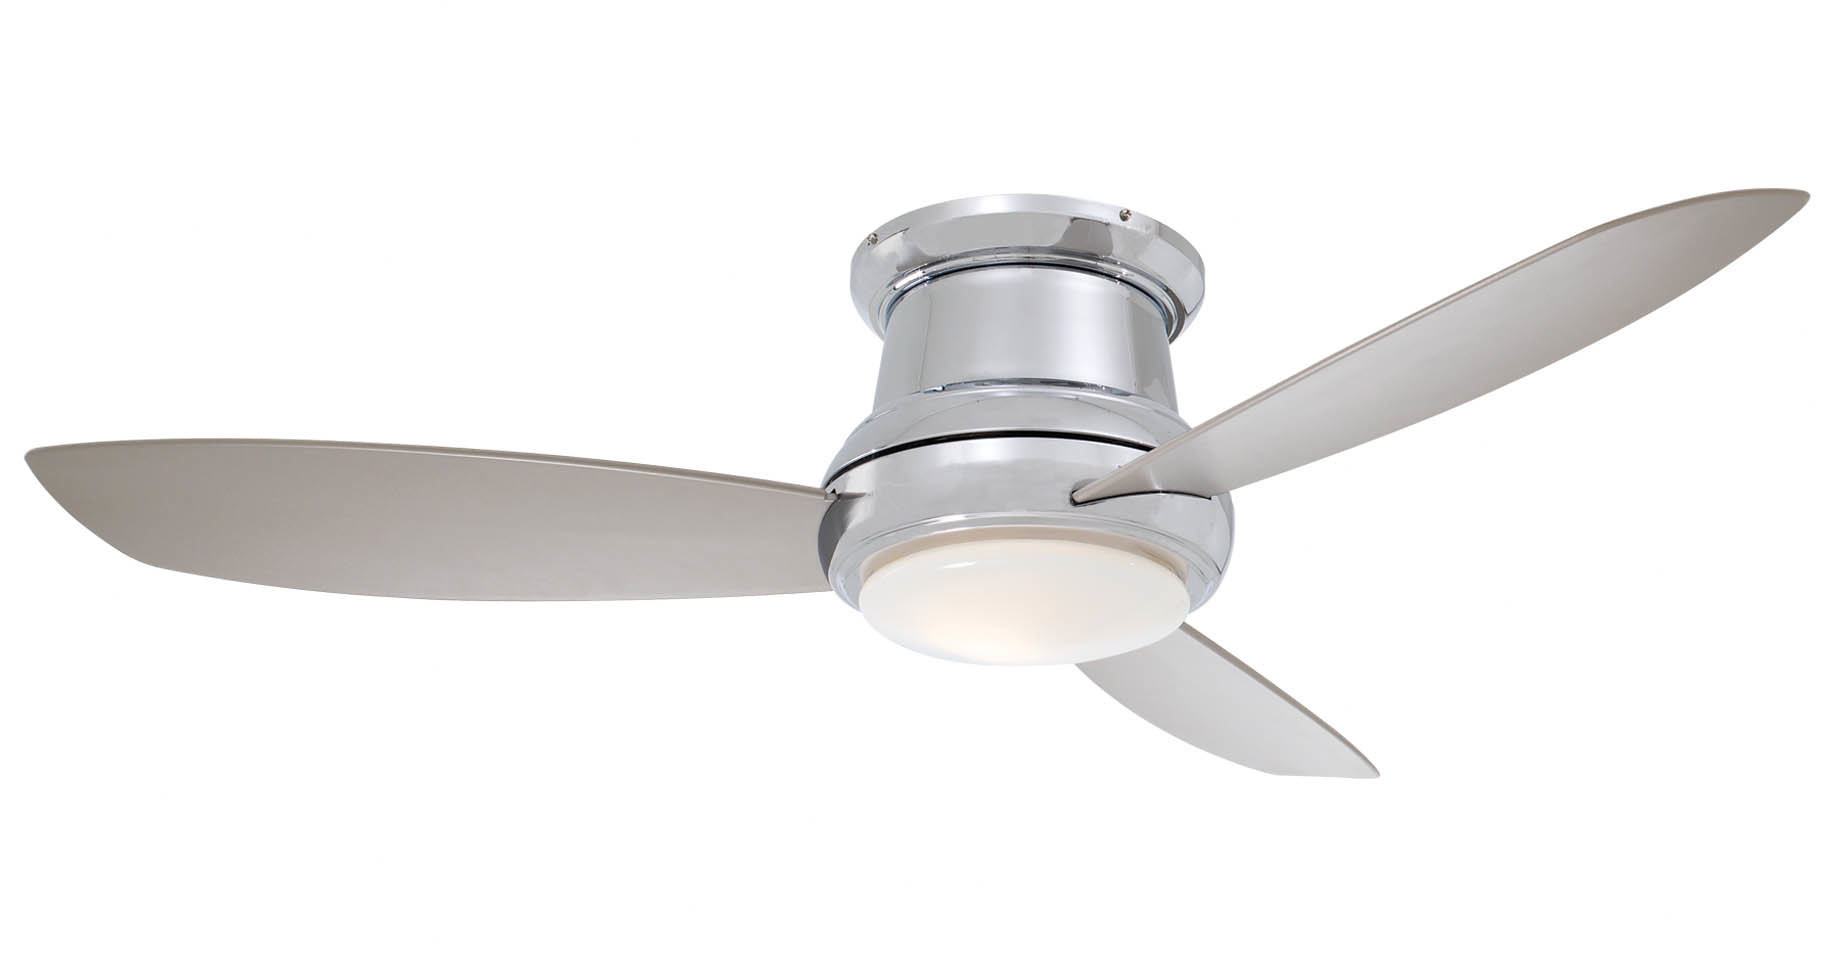 "2019 44"" Concept Ii 3 Blade Led Ceiling Fan With Regard To Cedarton 5 Blade Led Ceiling Fans (View 9 of 20)"